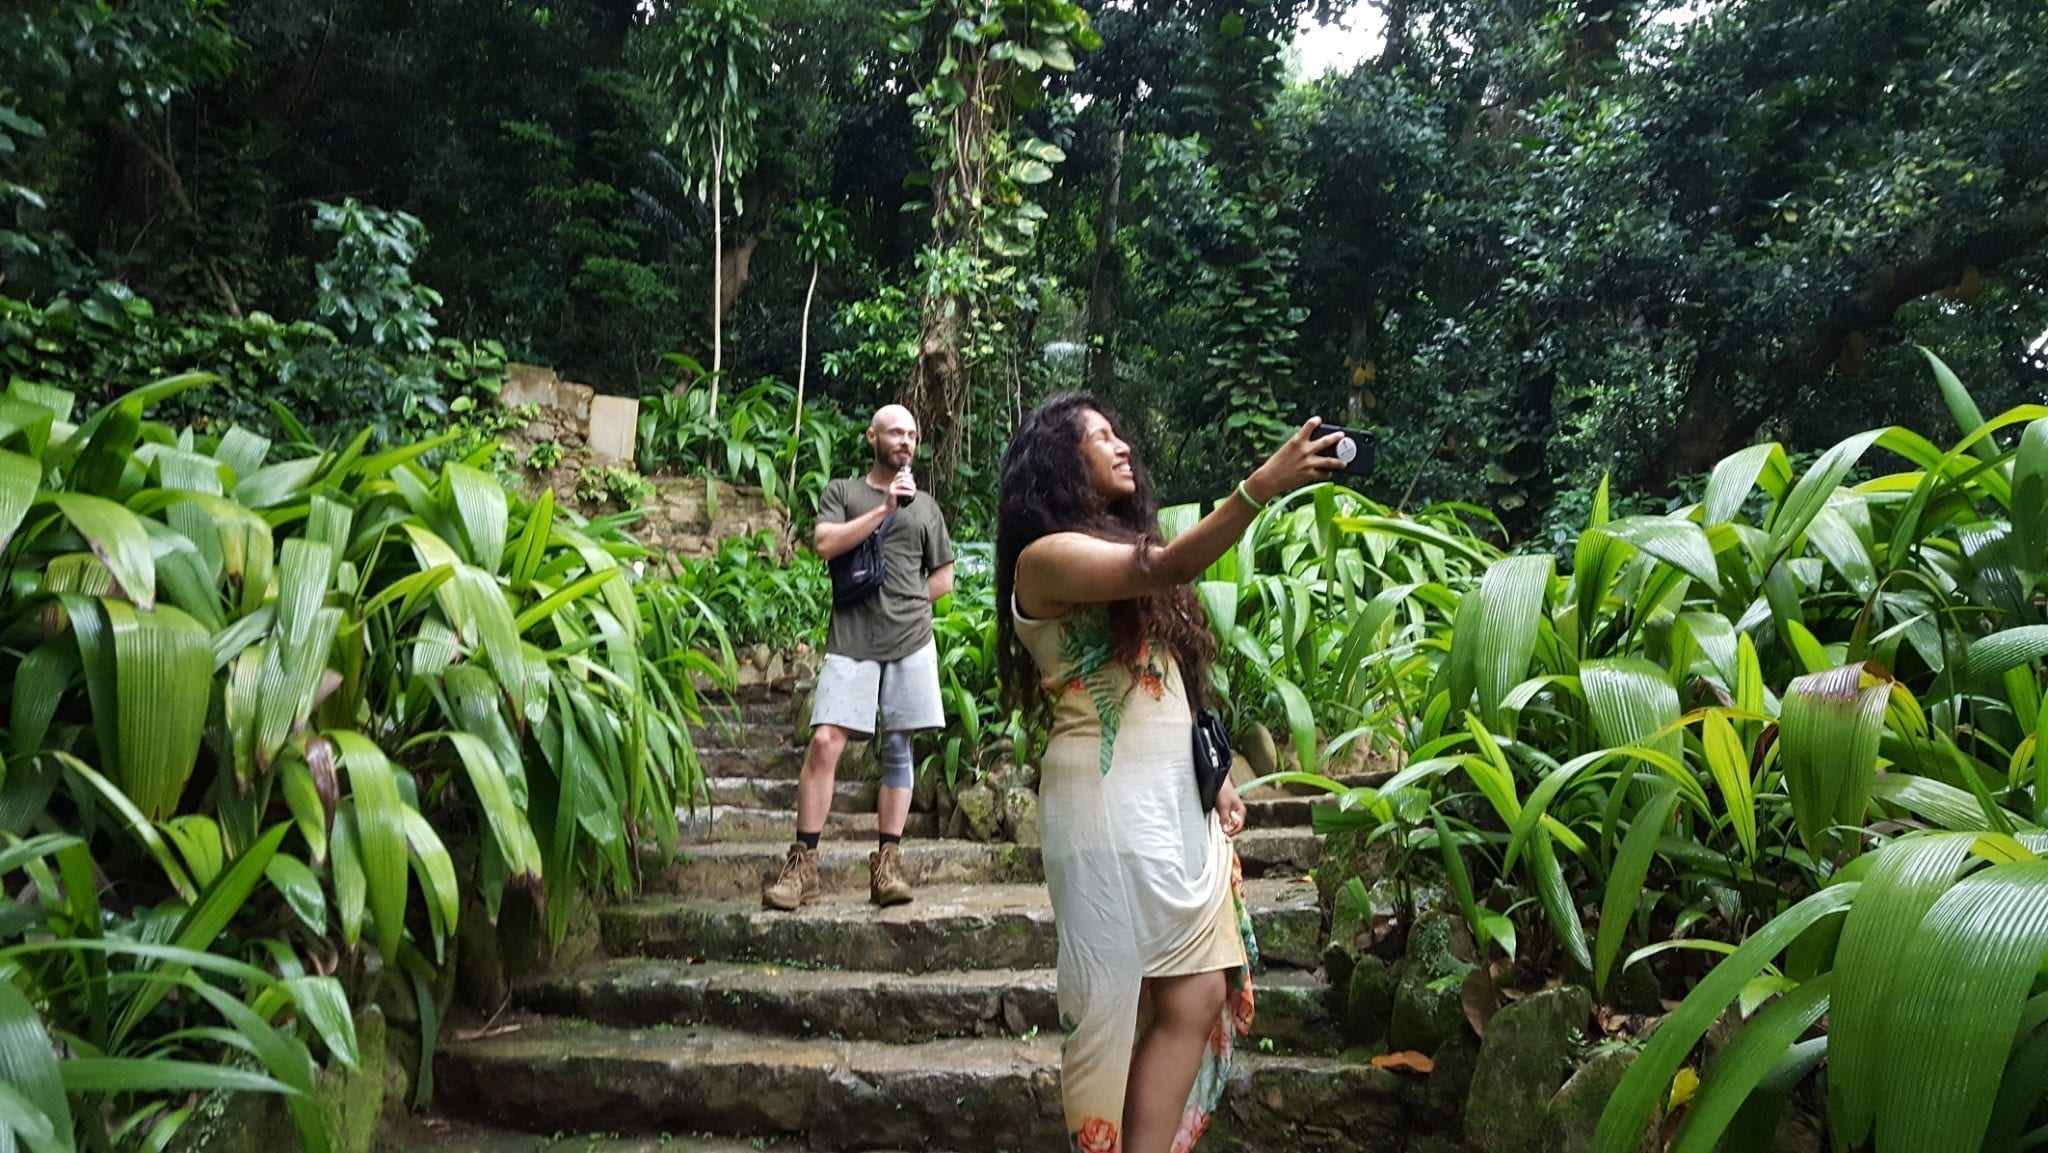 Foreign students of Portuguese taking pictures at the Botanical Garden in Rio de Janeiro.